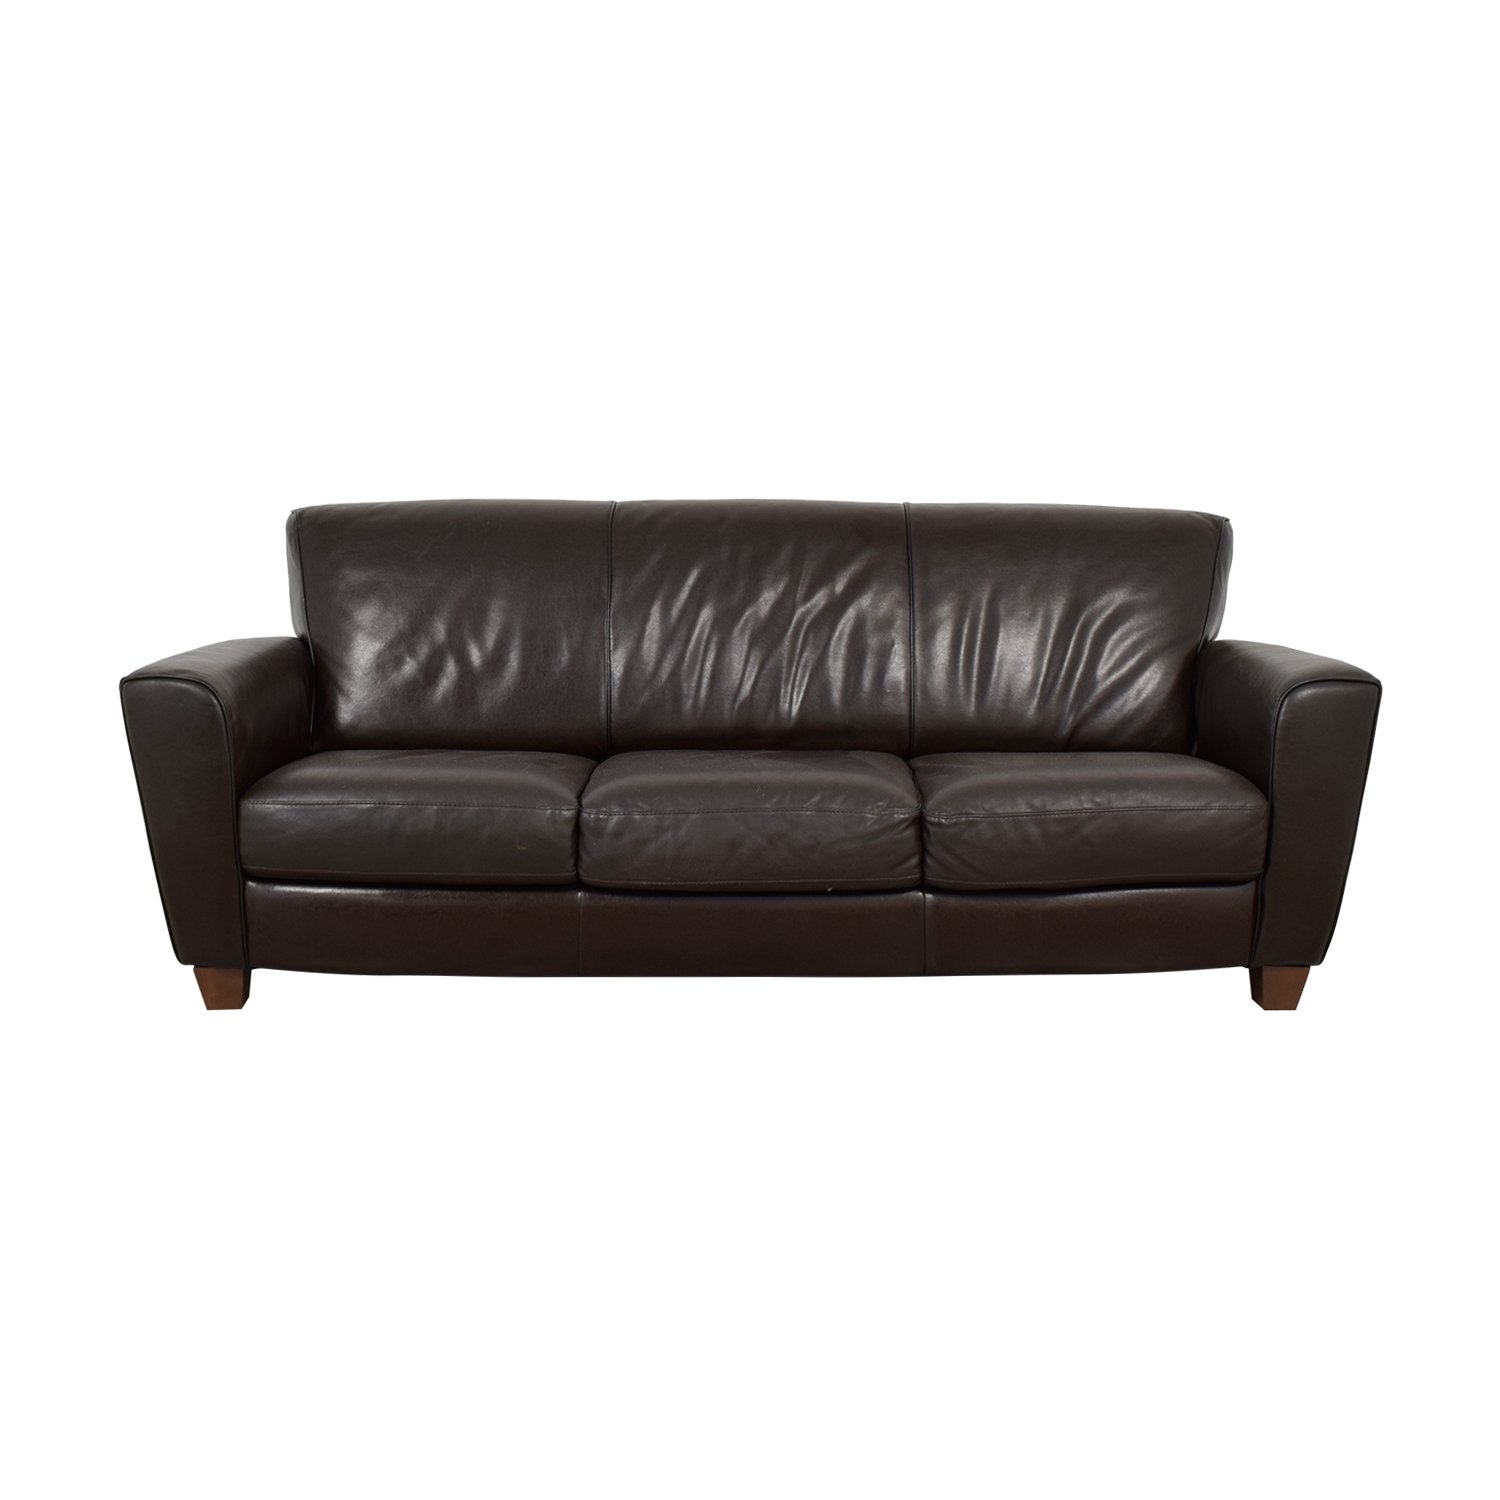 Natuzzi Natuzzi Brown Leather Three-Cushion Couch